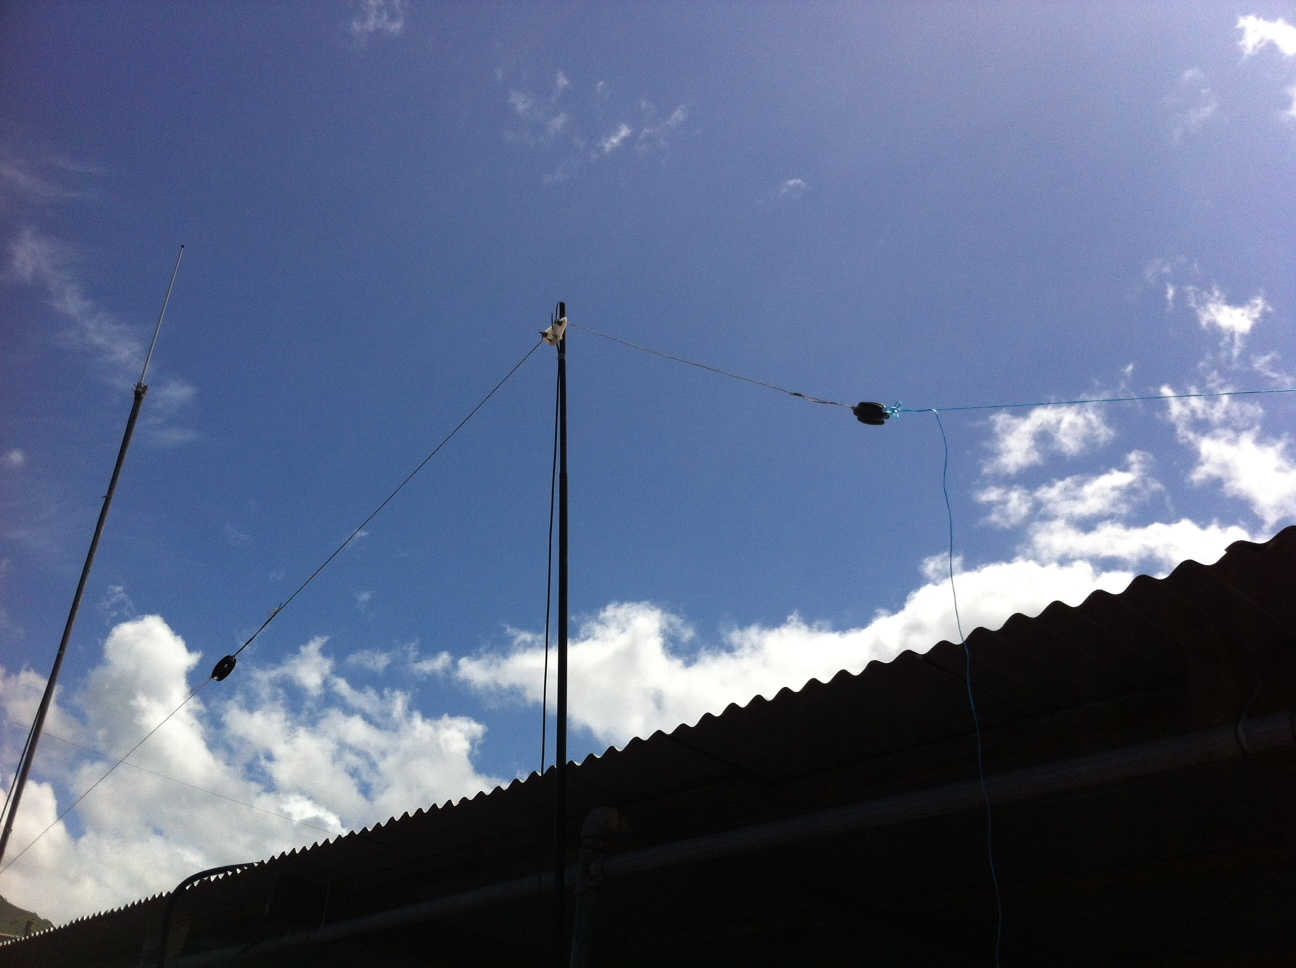 12. May 2014 QRV on 6m with dipole and IC-7000